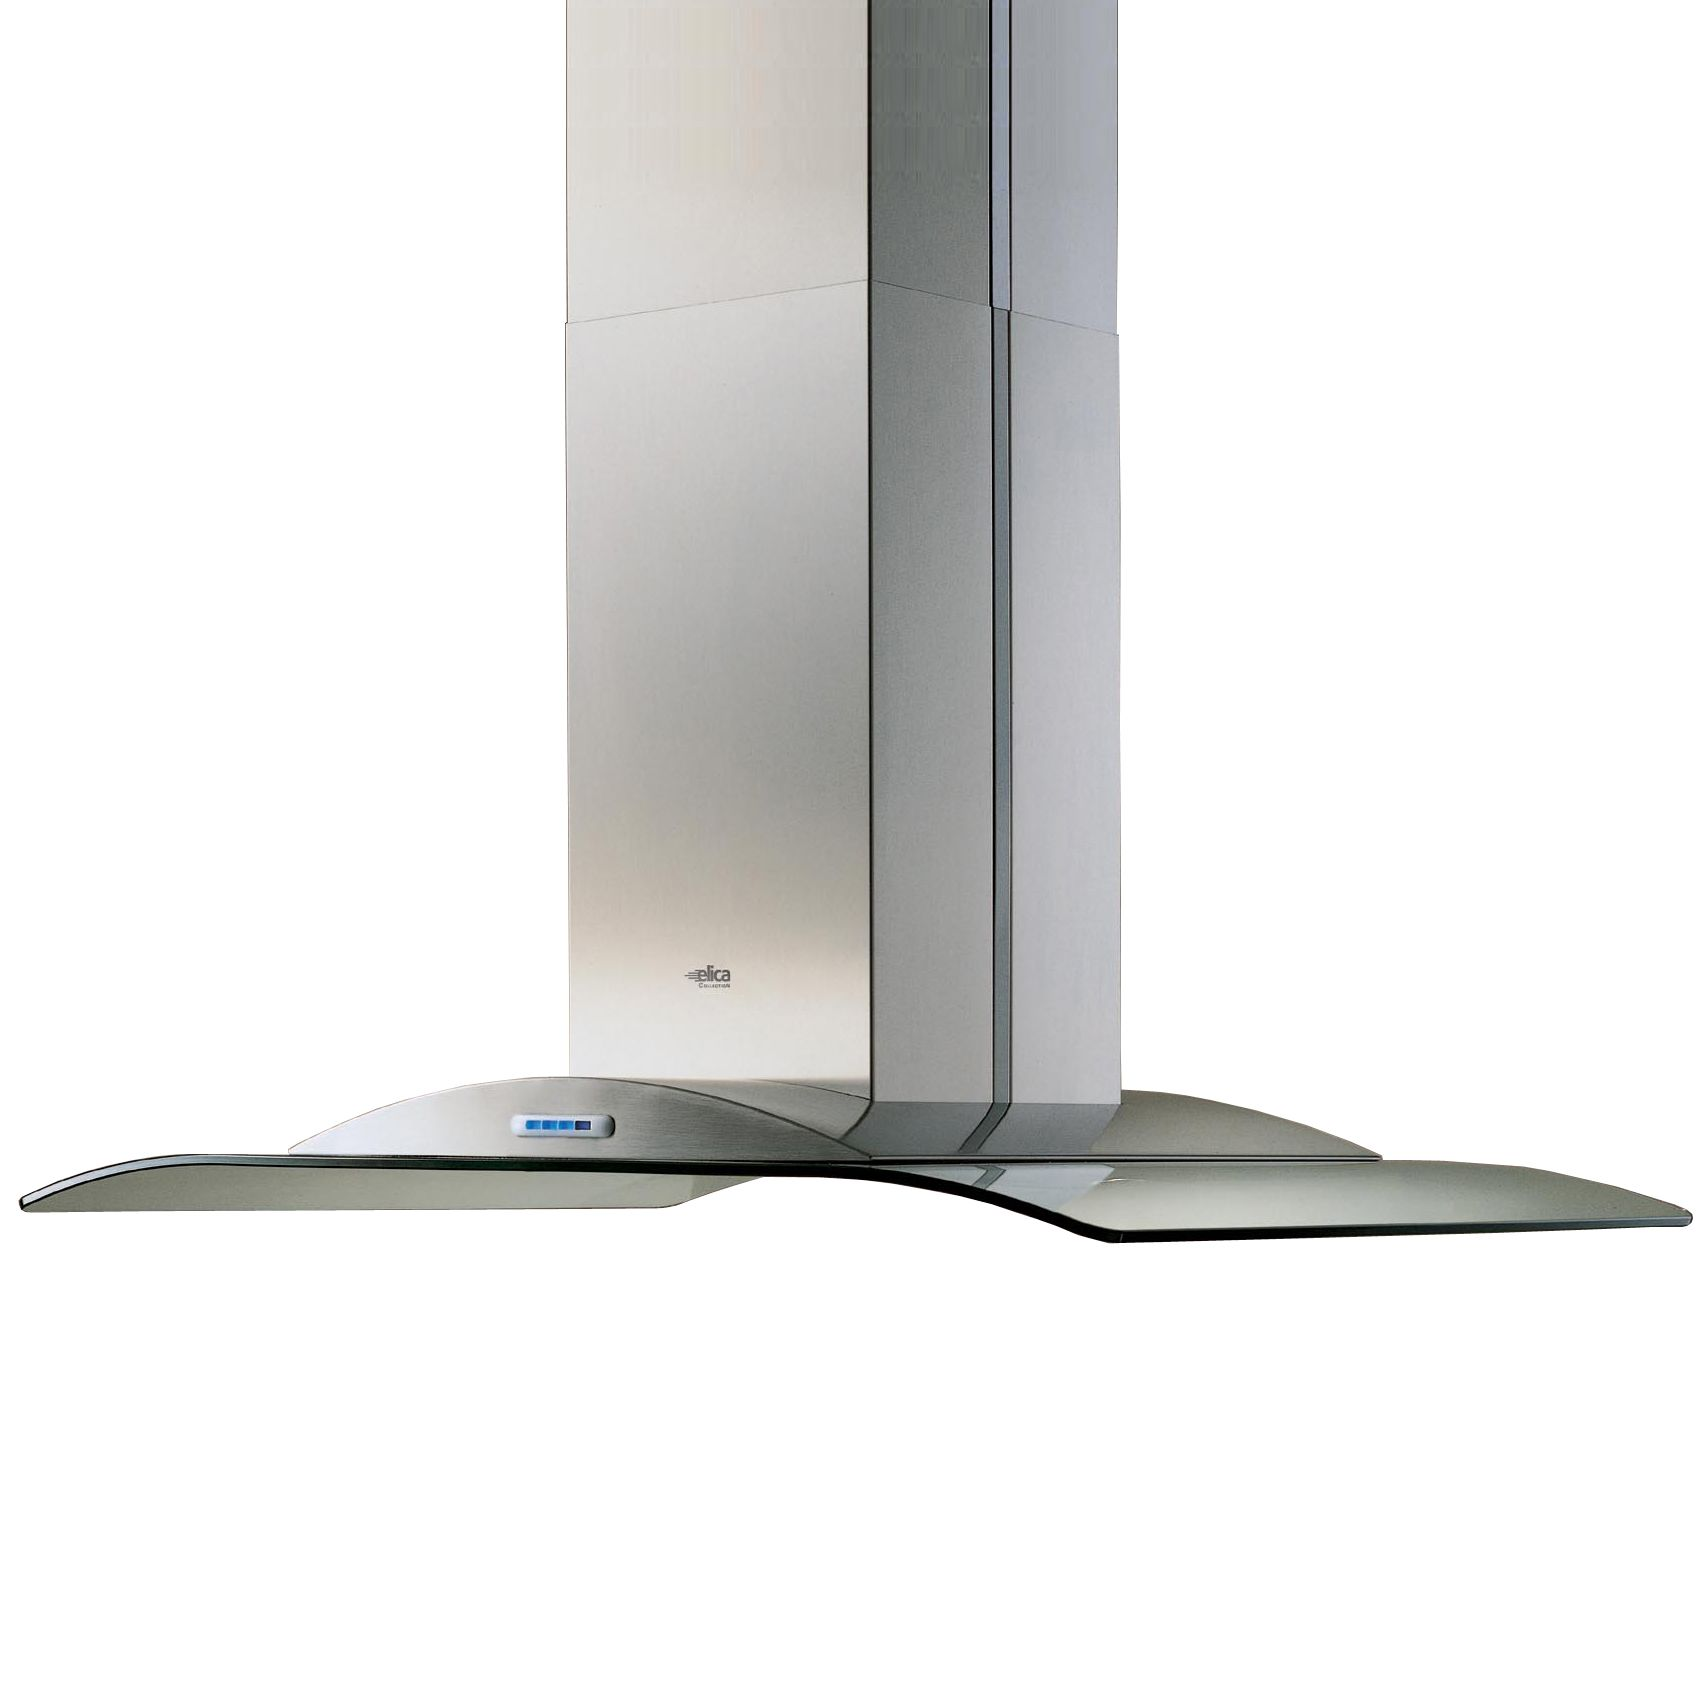 Elica Collection Antarctica Island Chimney Cooker Hood, Stainless Steel